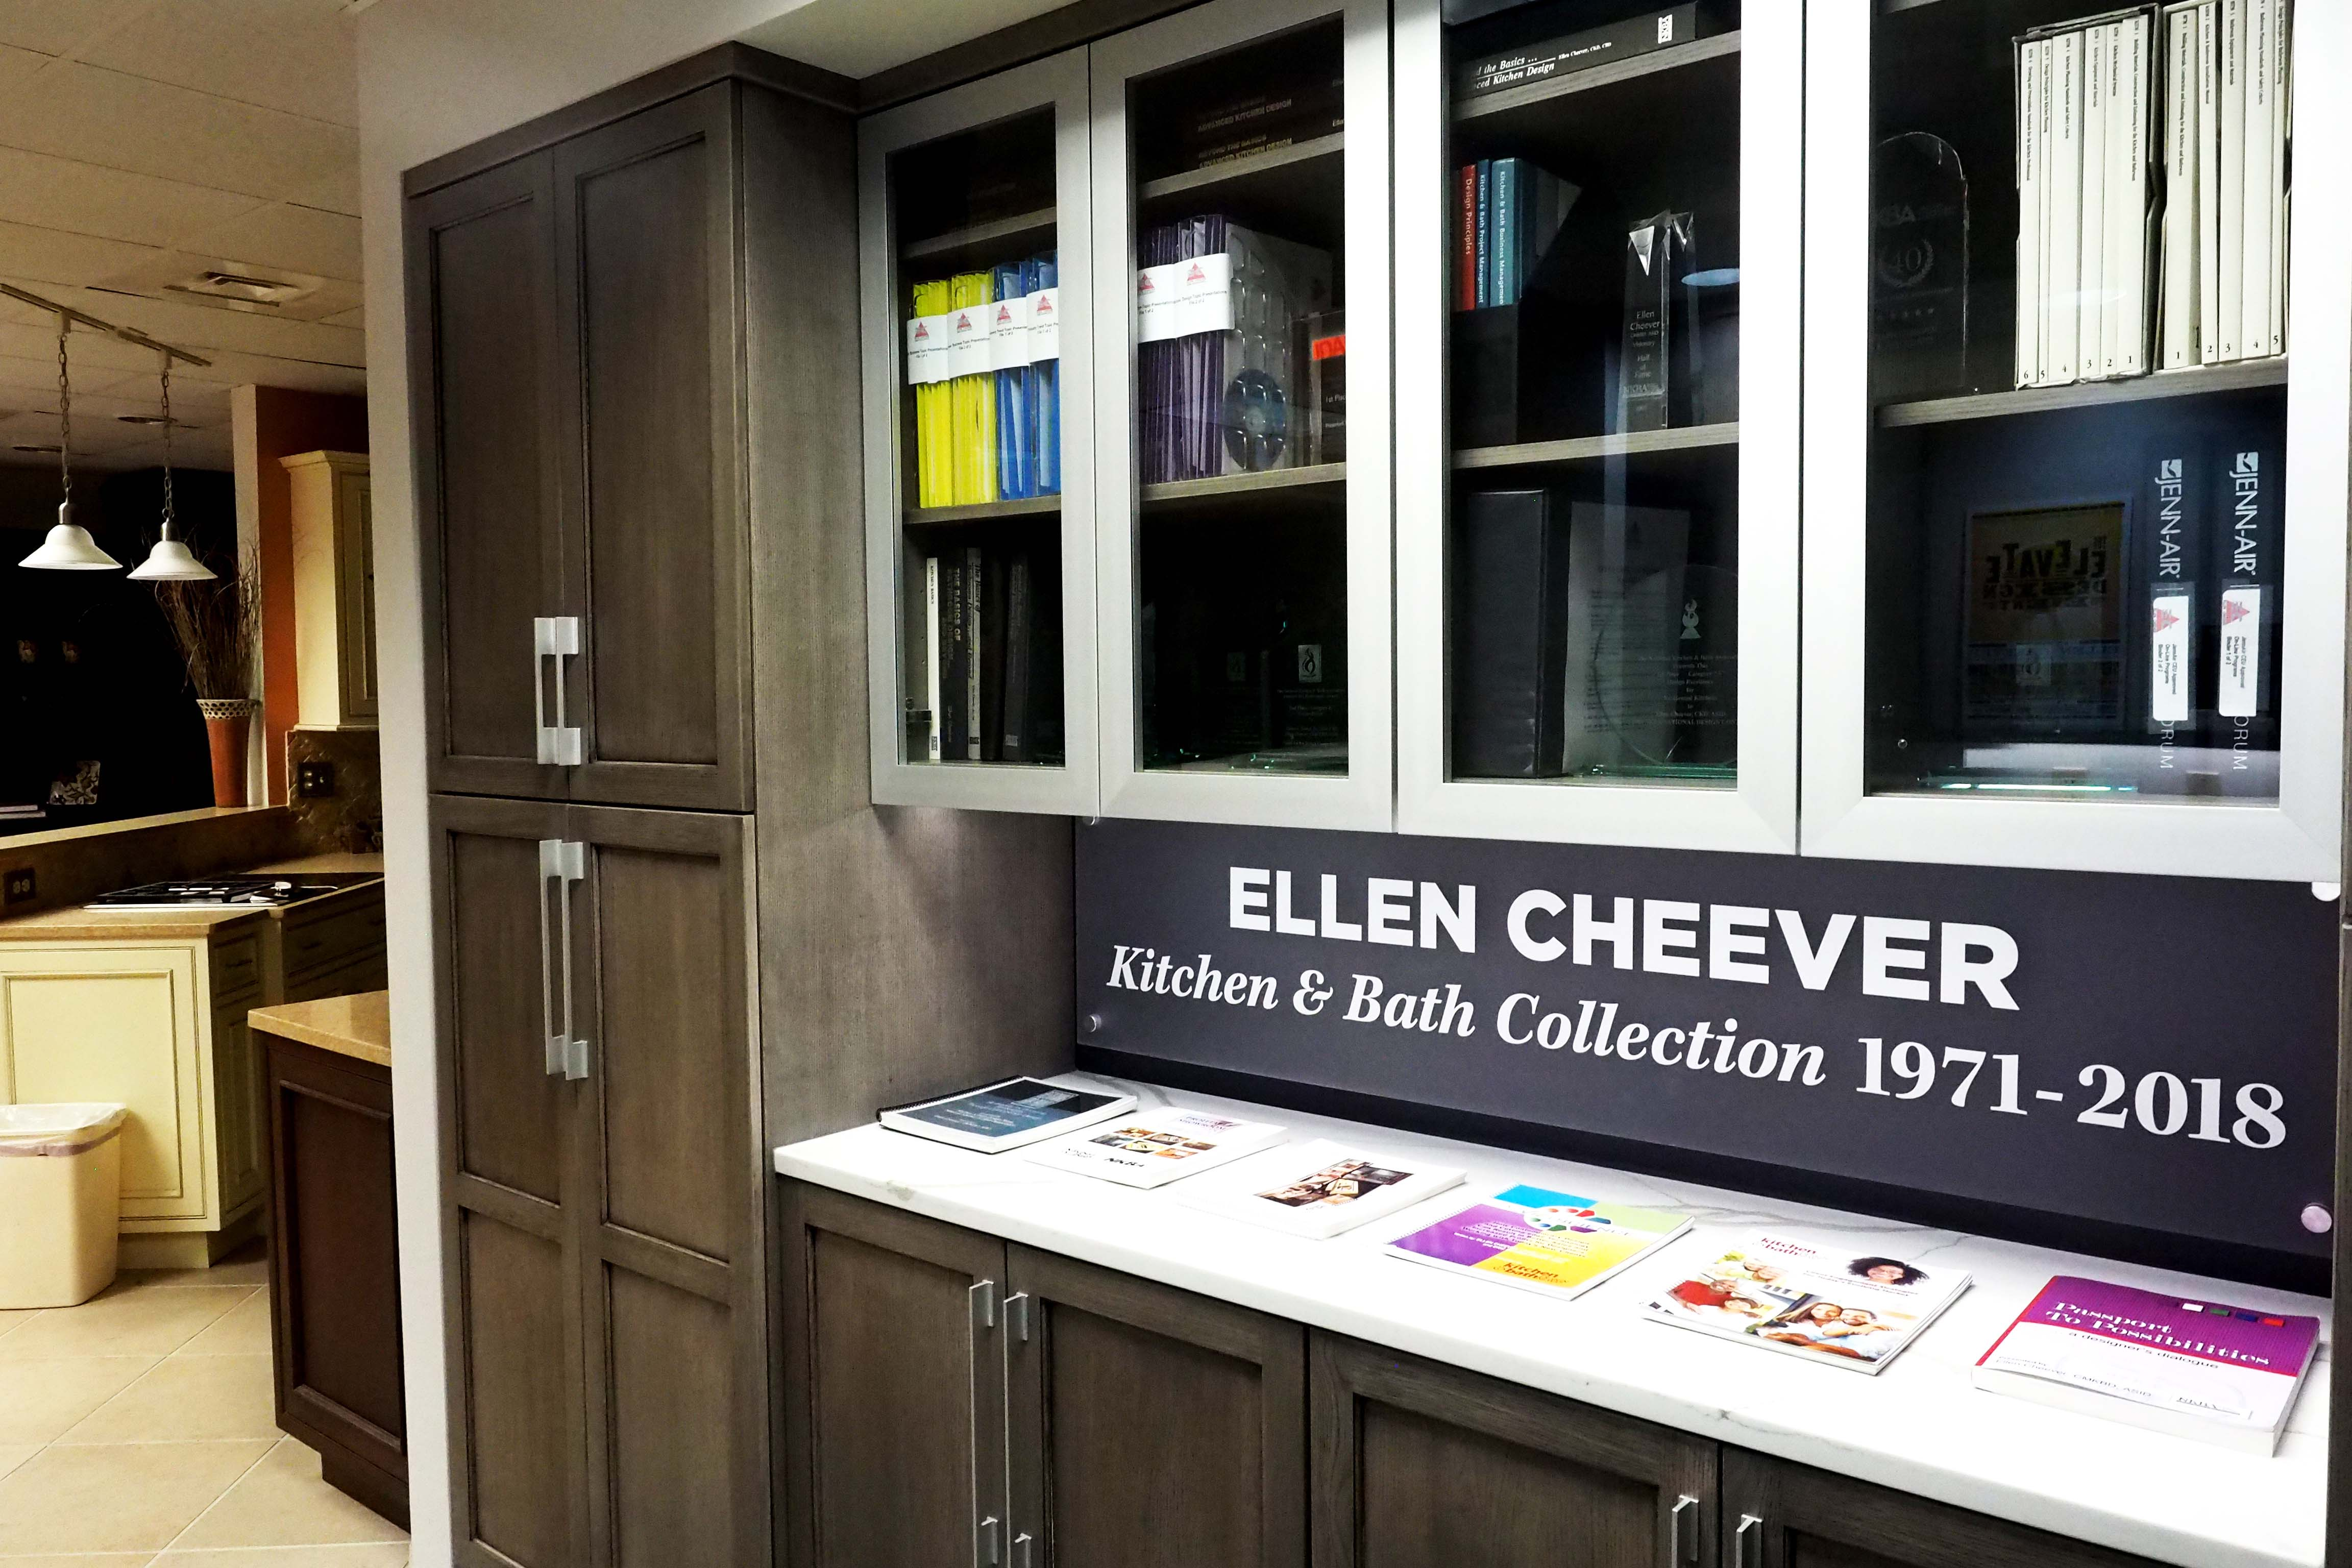 Ellen Cheever Kitchen And Bath Collection 1971 2018 College Of Liberal Arts And Human Sciences Virginia Tech